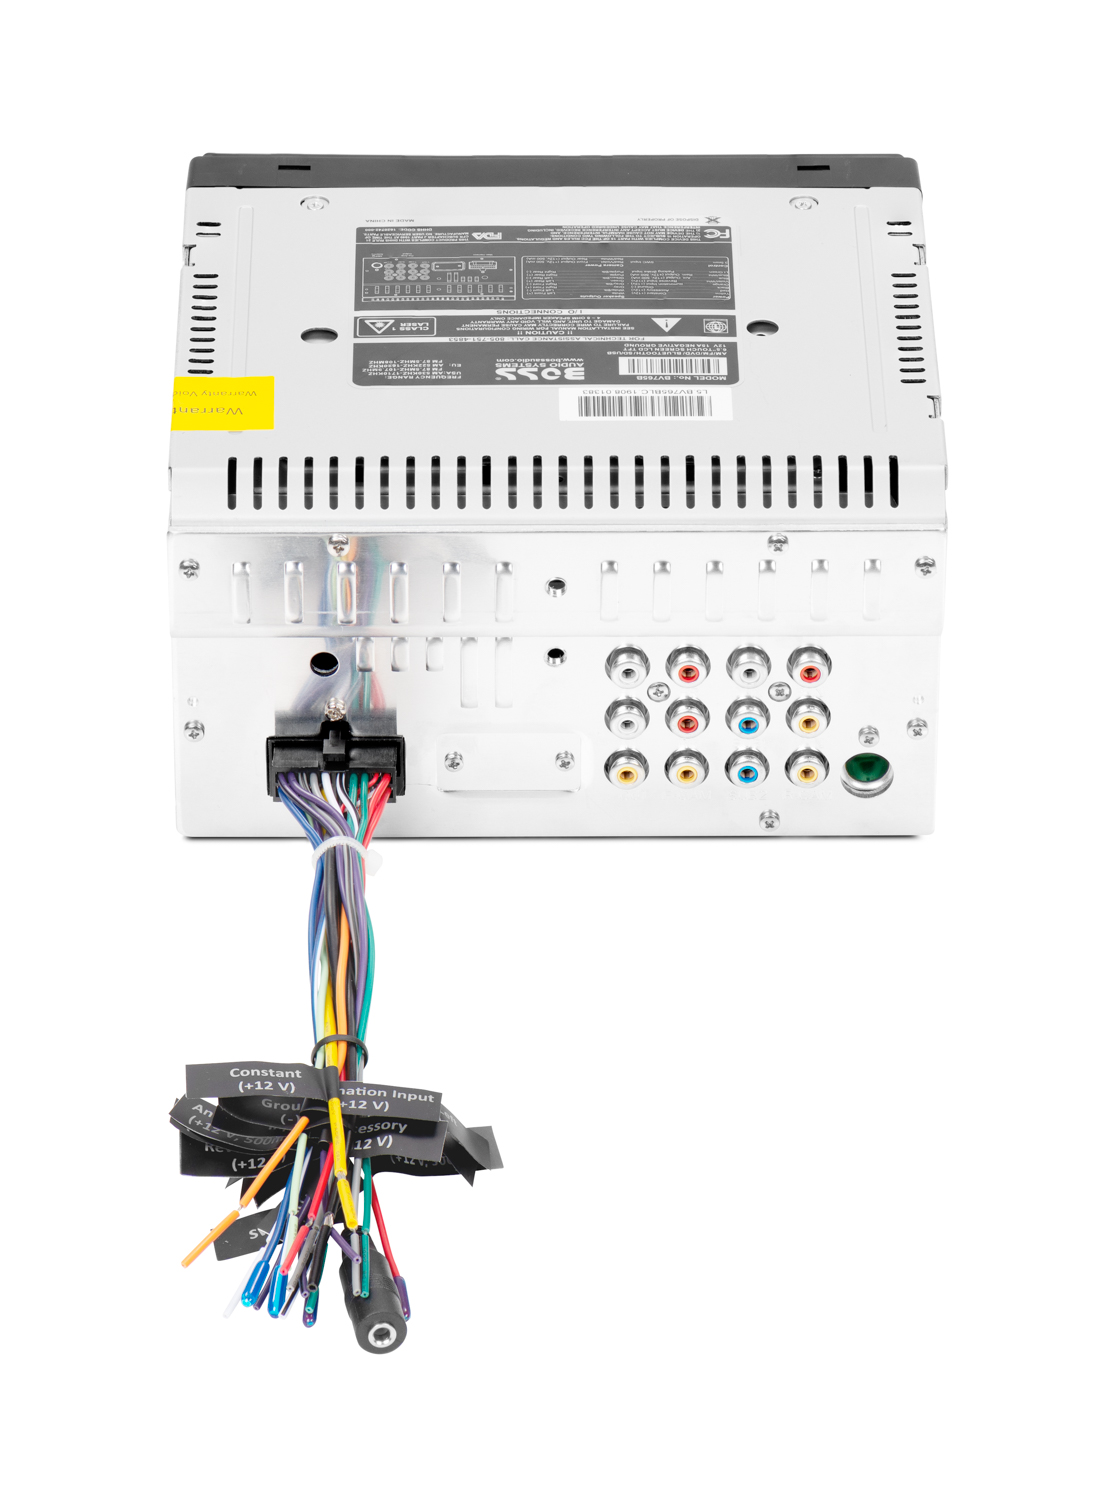 Boss Elite Be 1 Remote Subwoofer Control Wiring Diagram